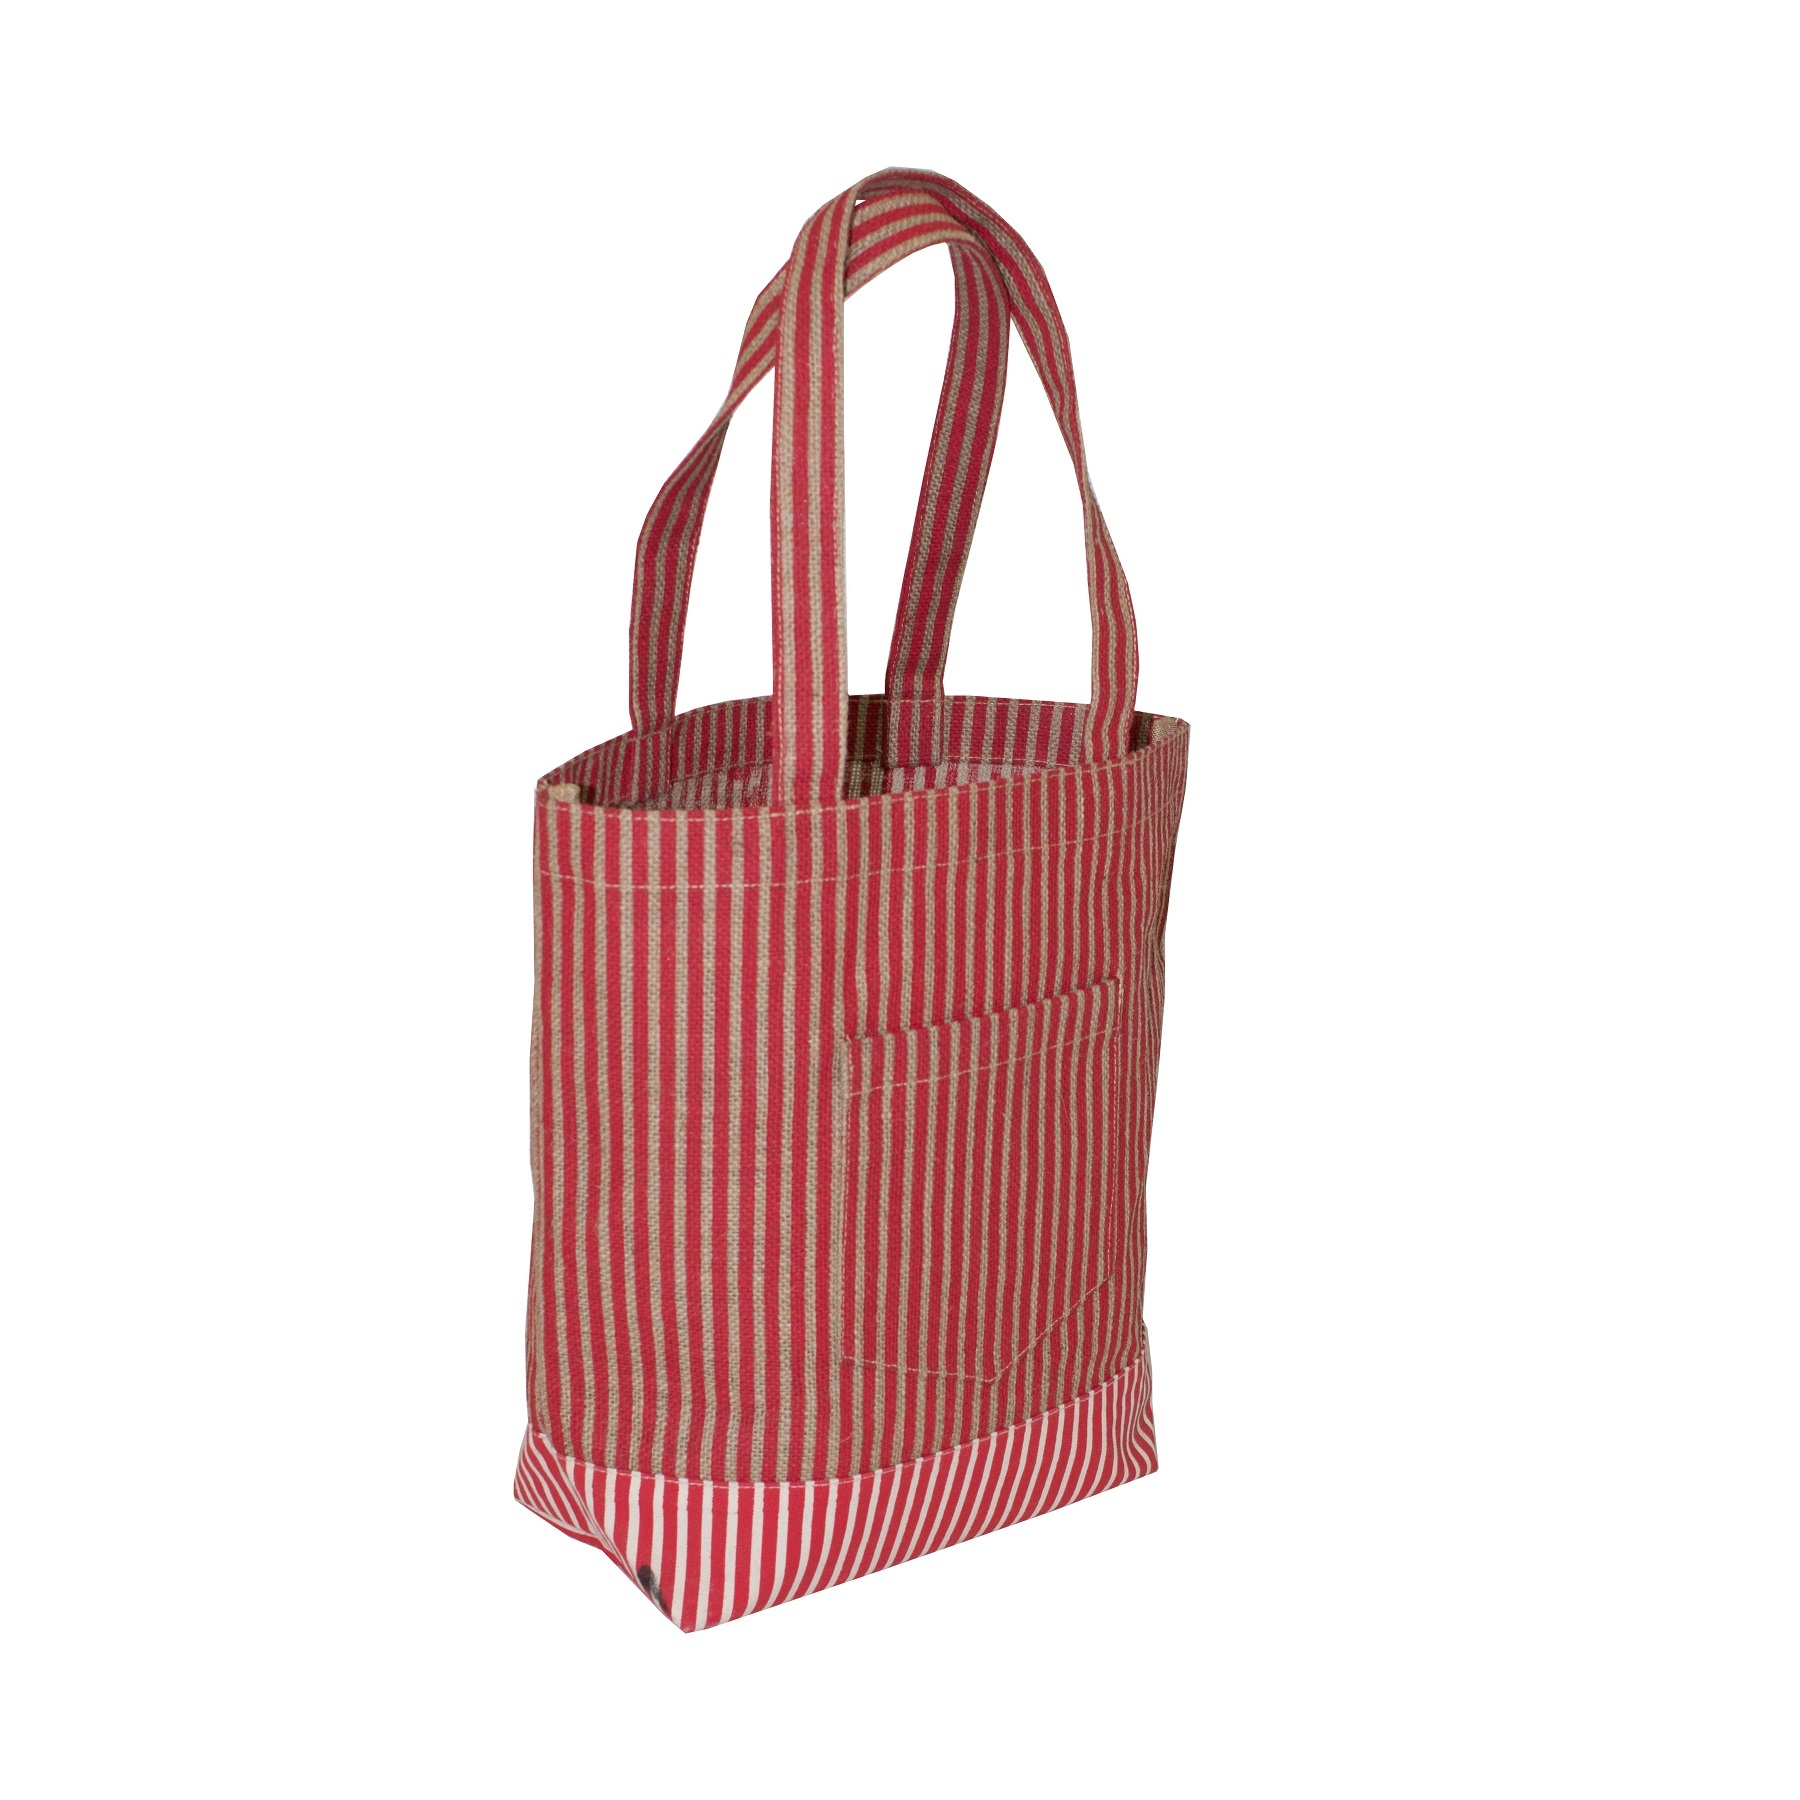 PP Laminated Jute Tote Bag With 12 Oz Canvas Bottom